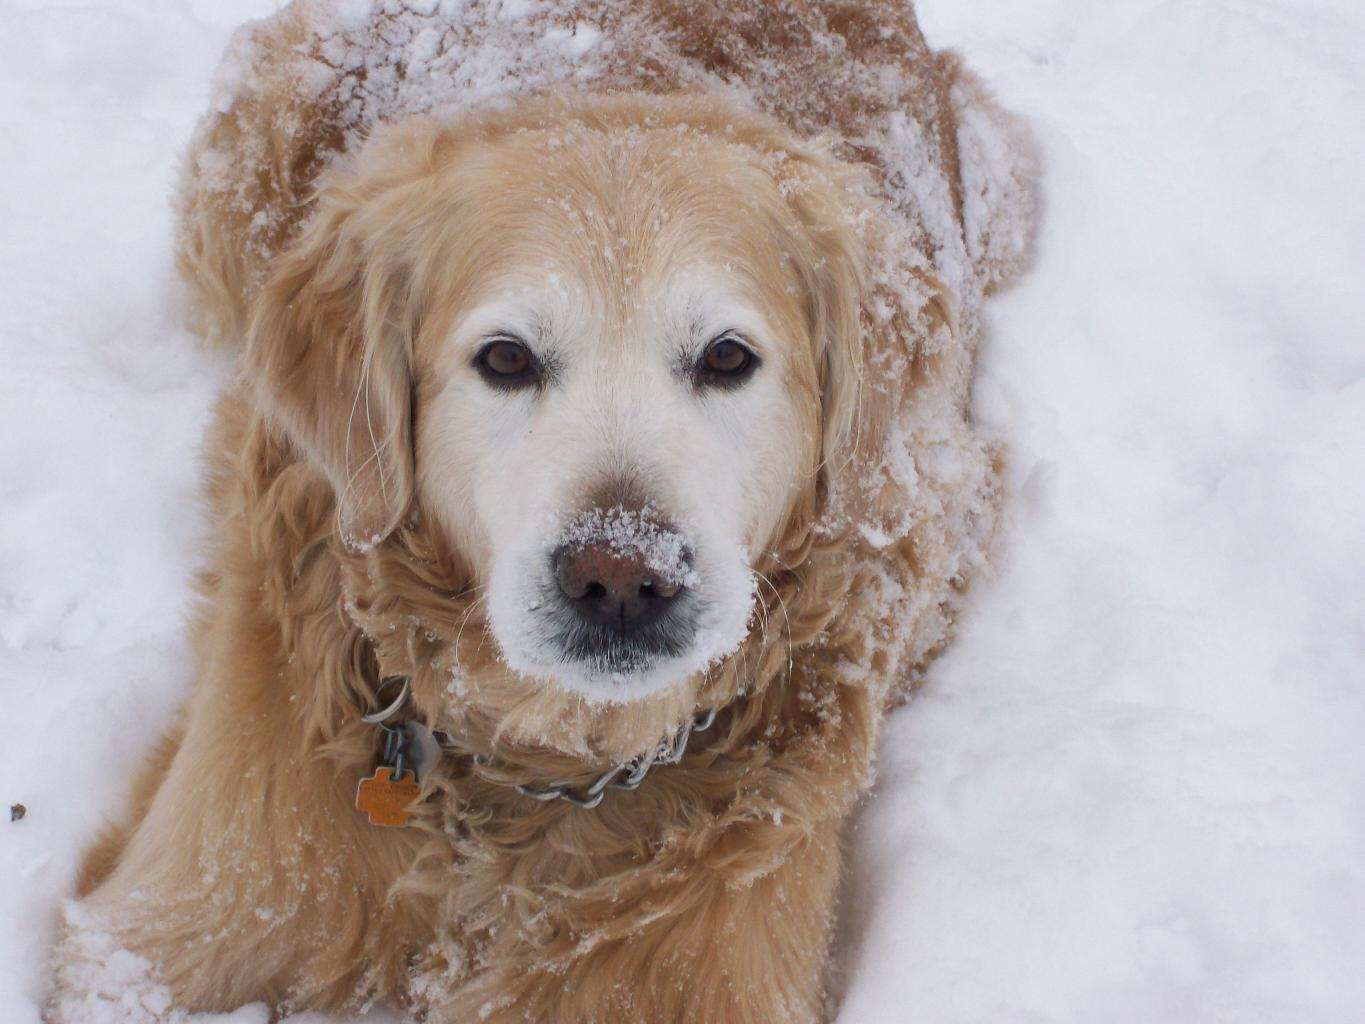 Tags: Golden Retriever Snowy Golden